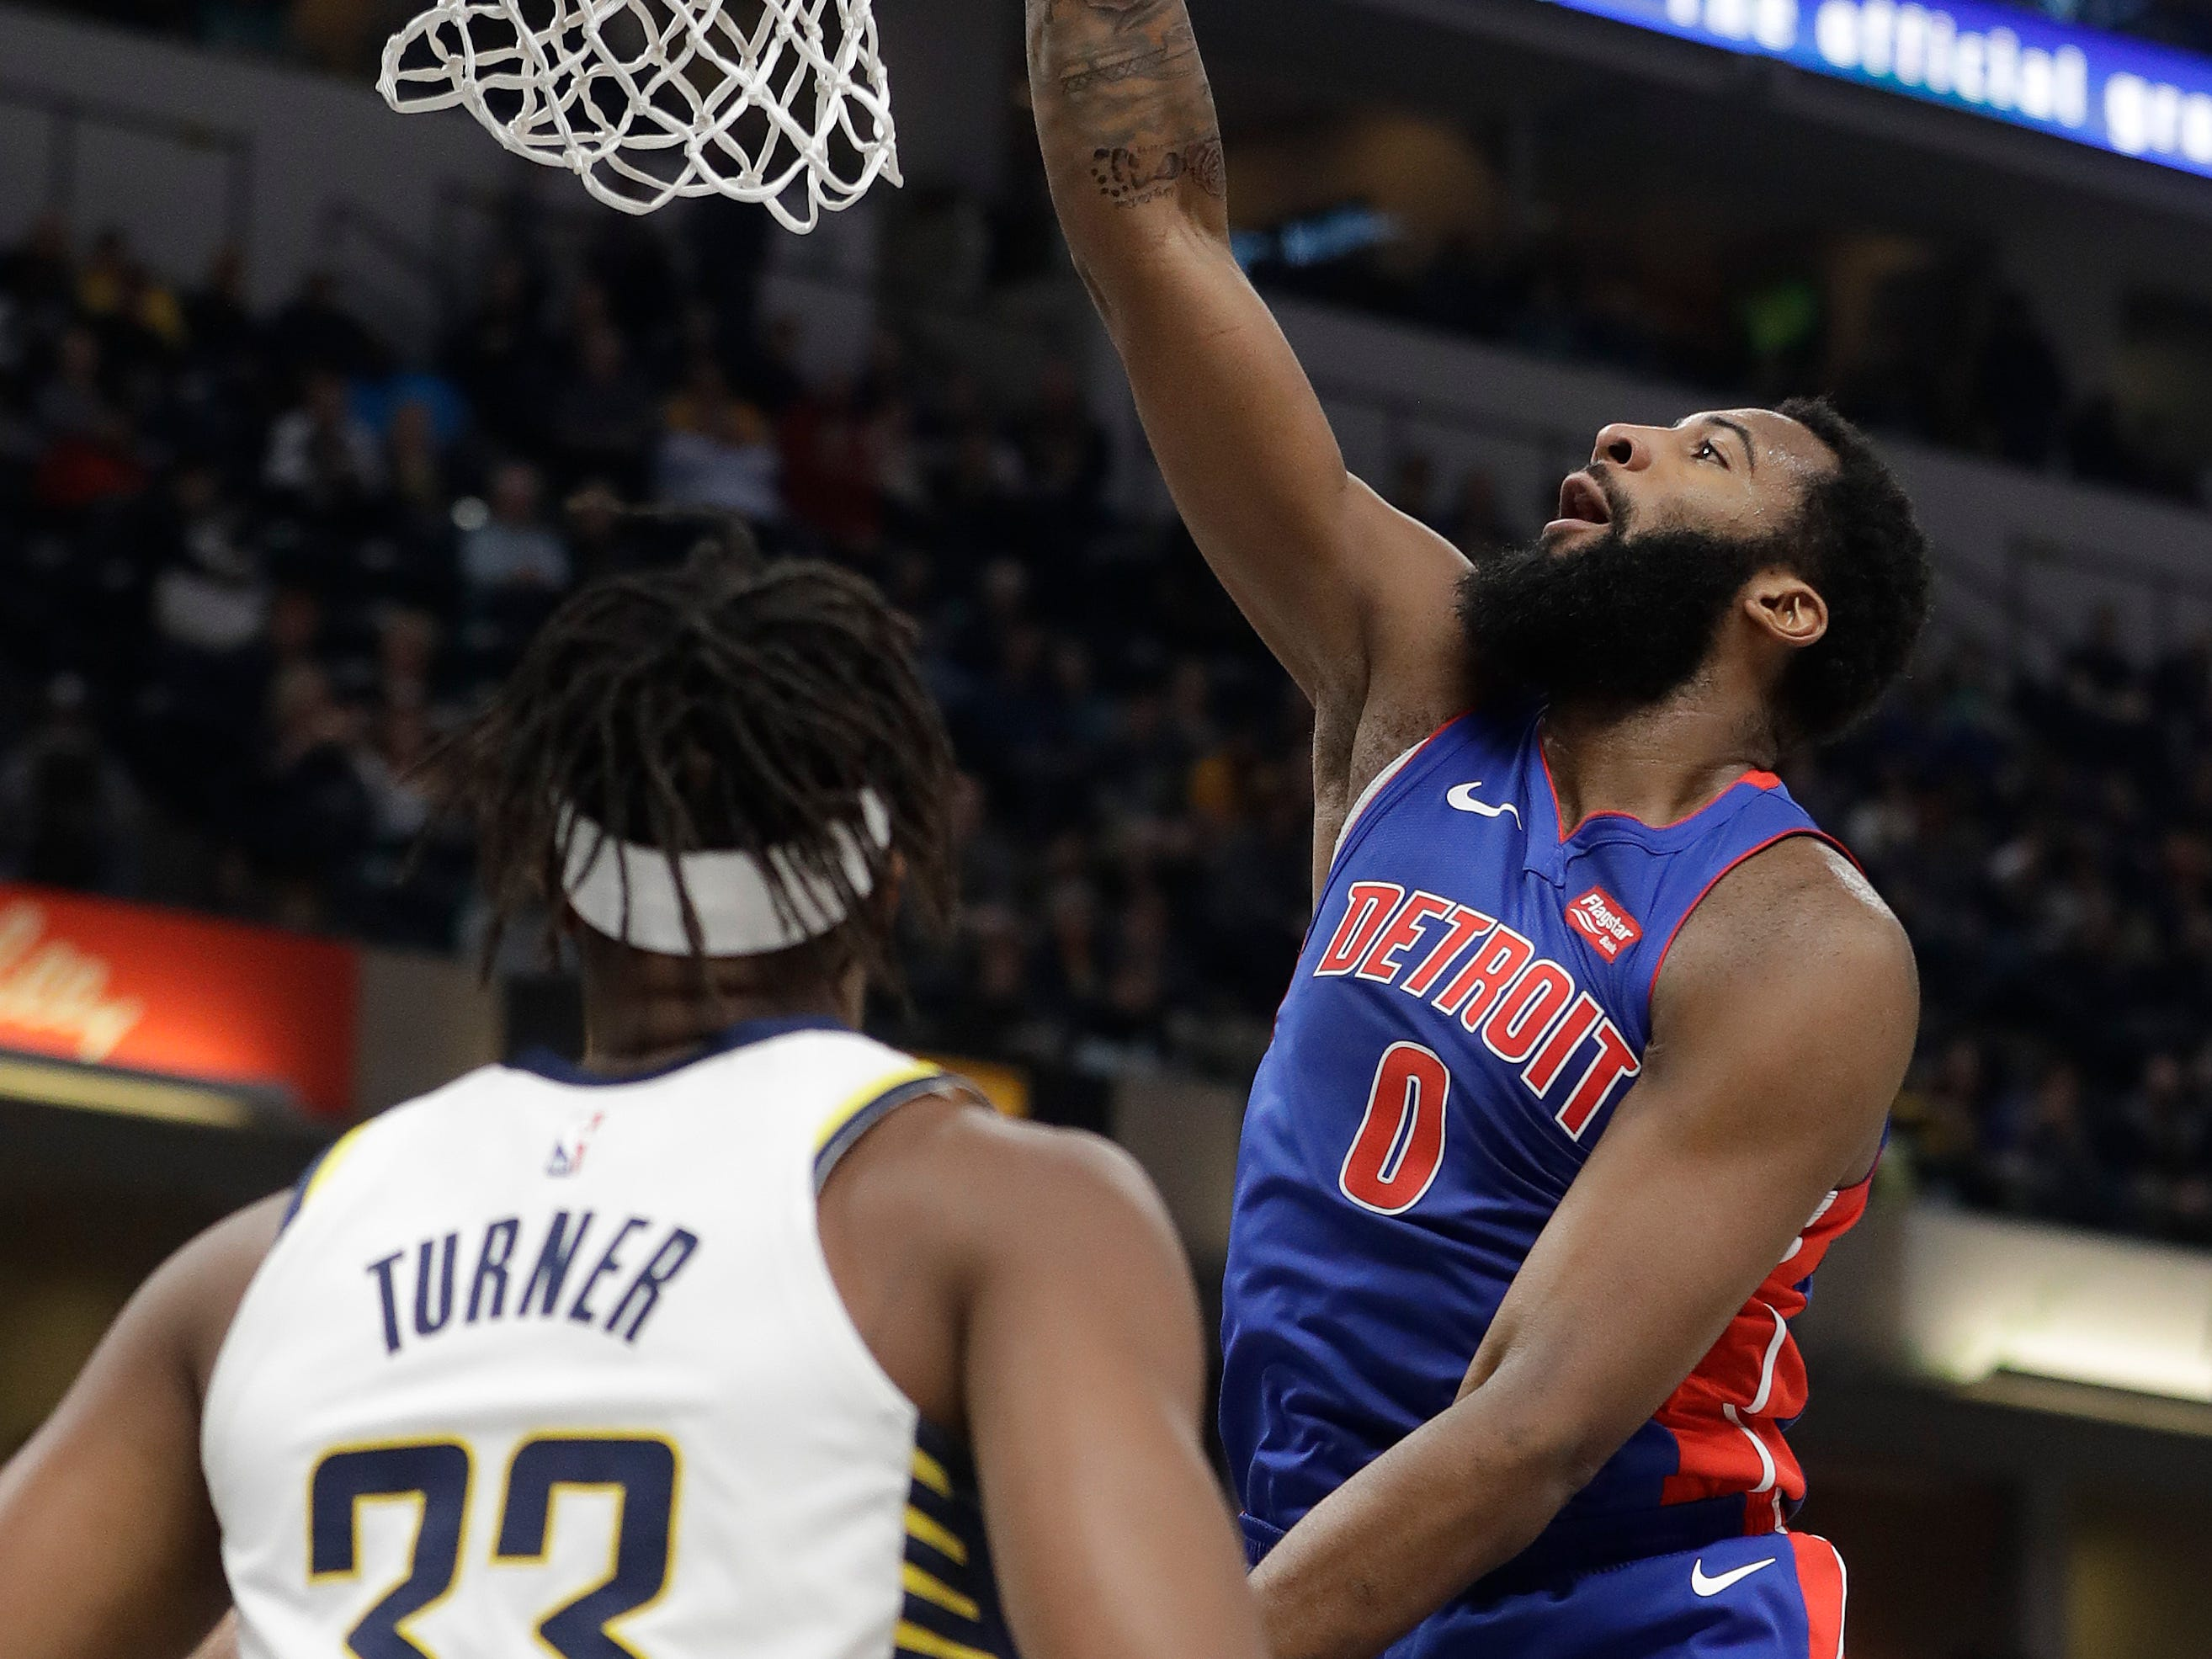 Detroit Pistons' Andre Drummond dunks against Indiana Pacers' Myles Turner during the first half Monday, April 1, 2019, in Indianapolis.